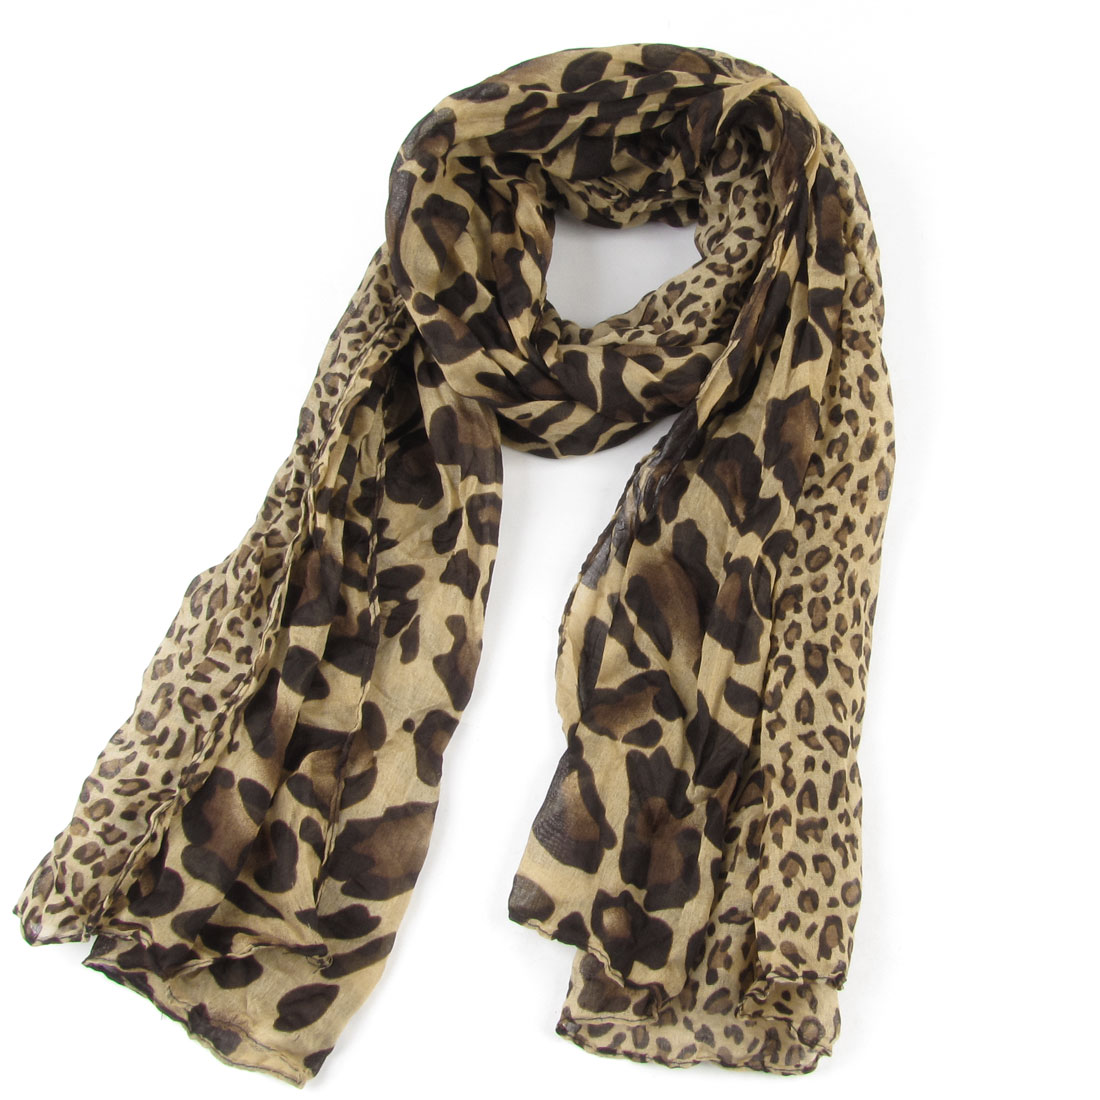 155cm x 83cm Brown Black Khaki Leopard Print Nylon Neck Scarf Wrap for Woman